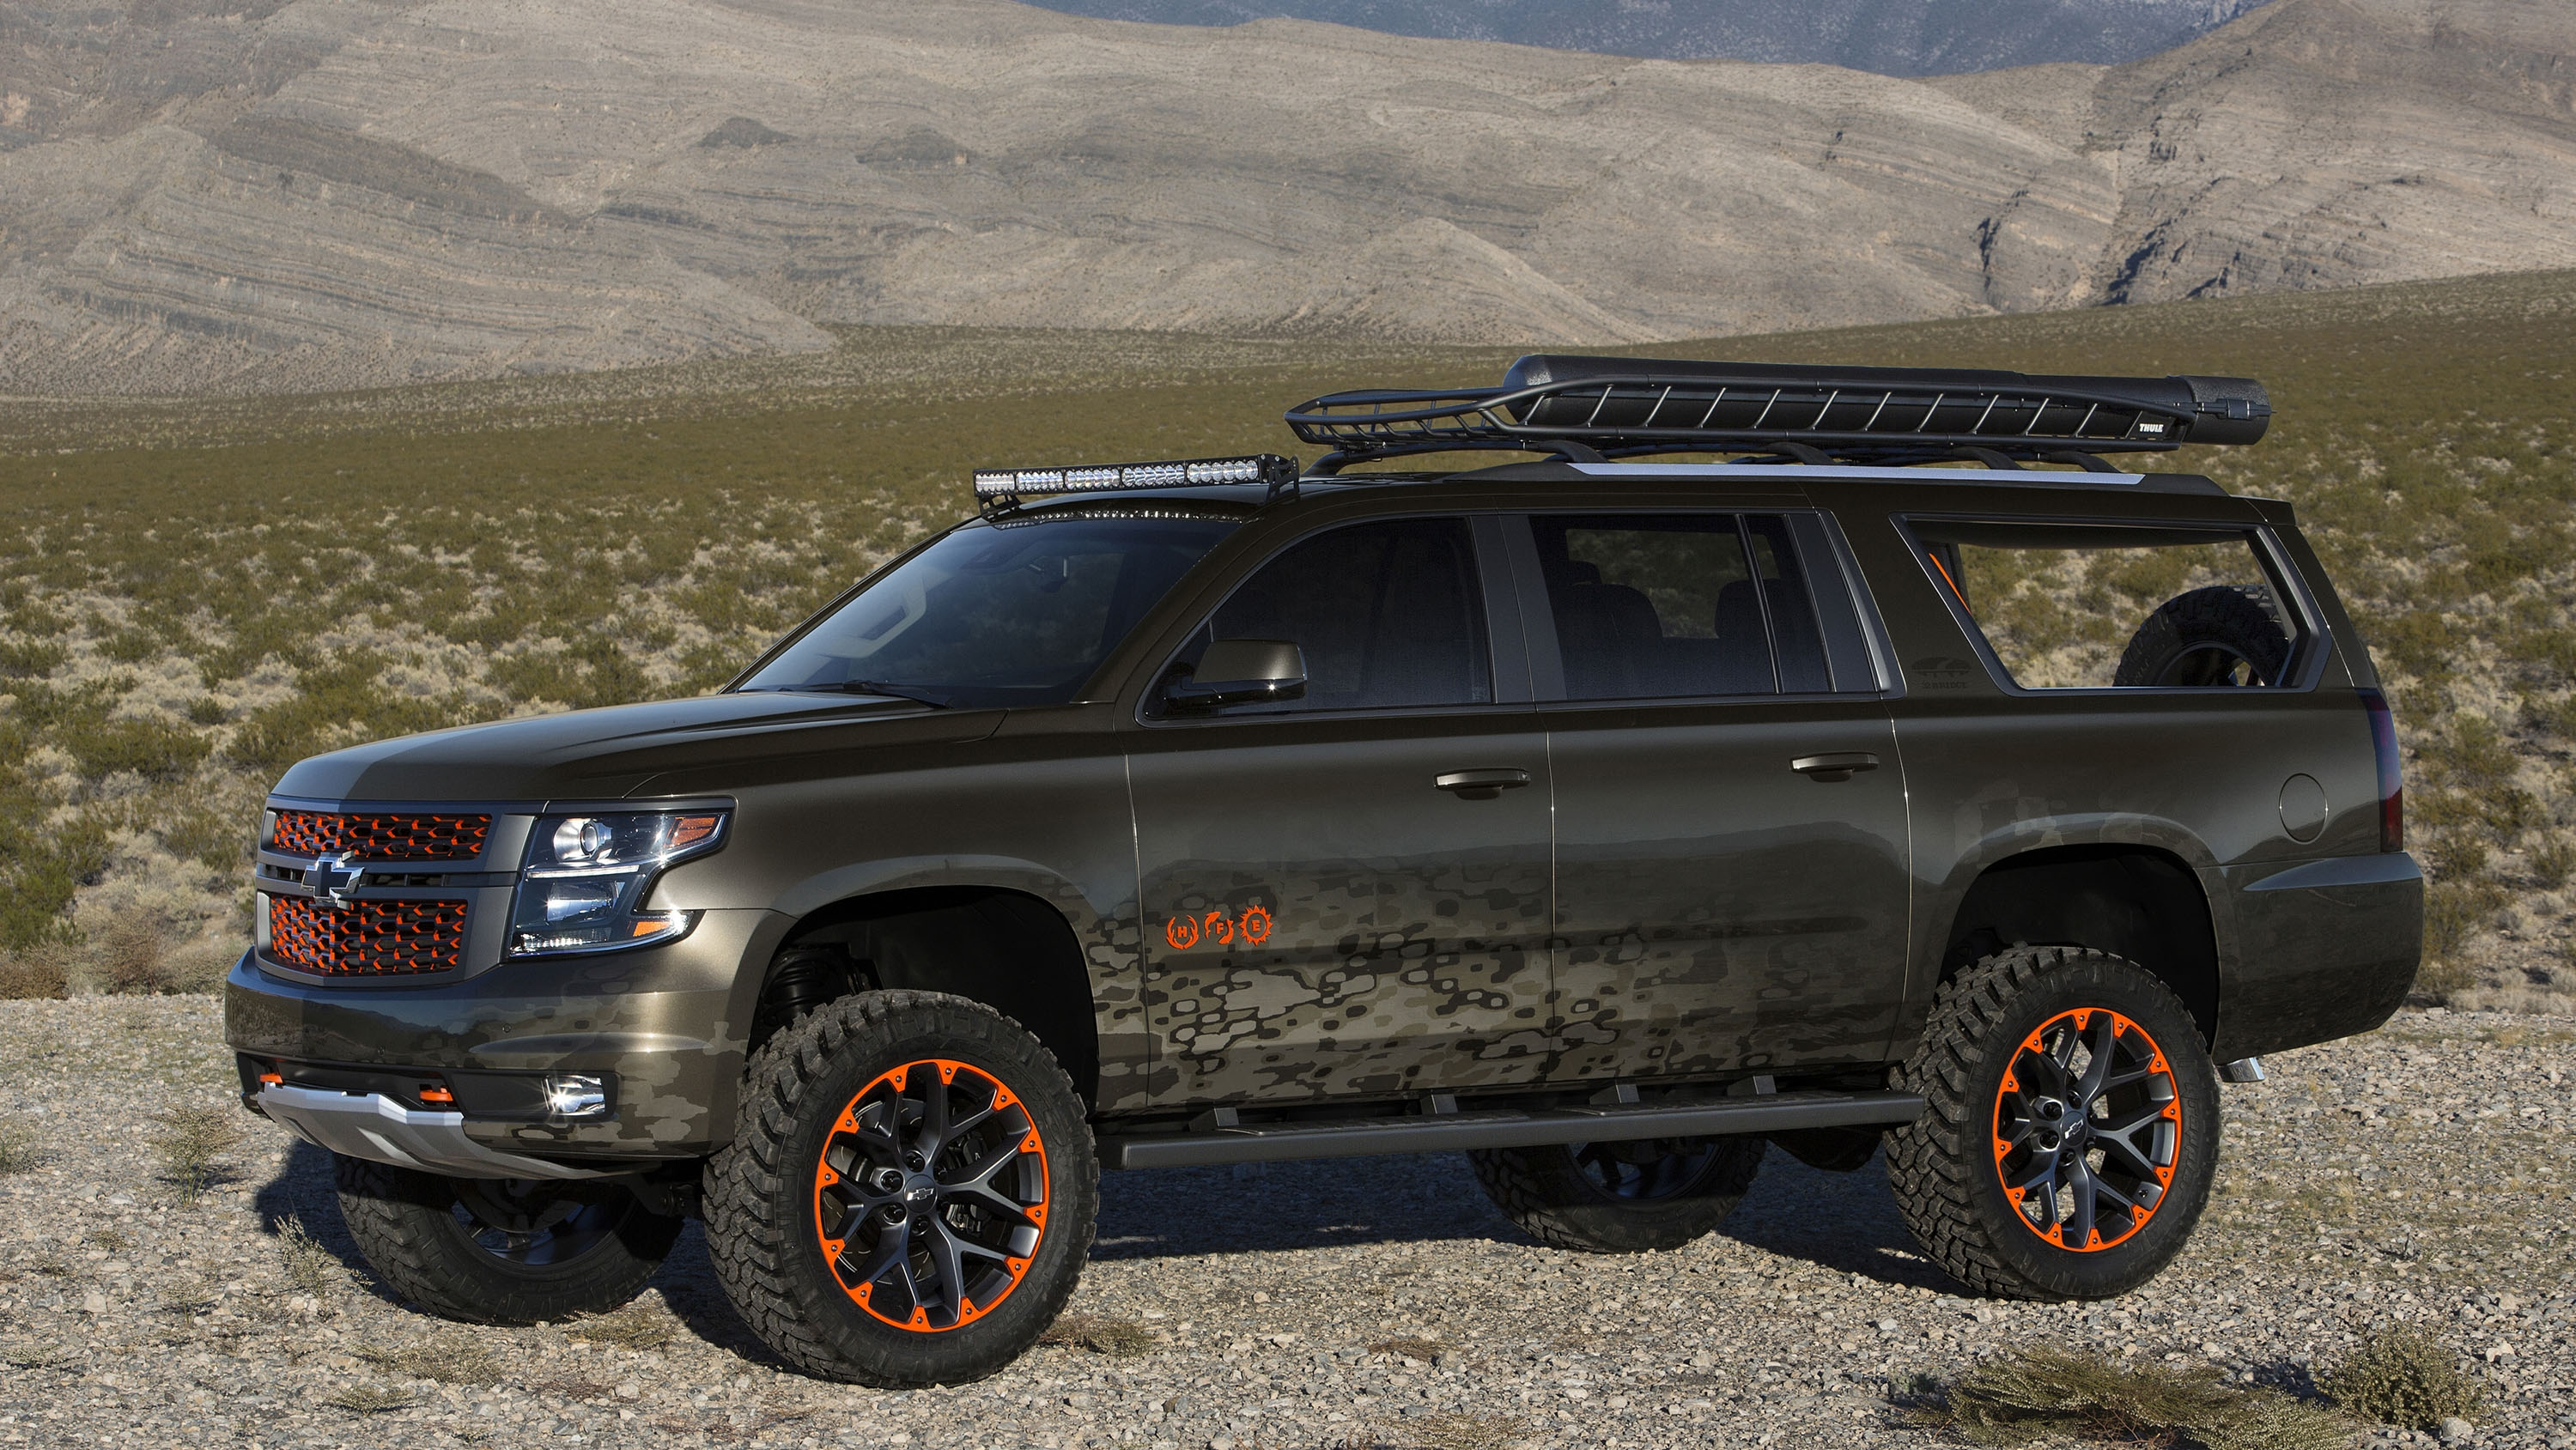 Cars With Third Row Seating >> 2017 Chevrolet Suburban Luke Bryan Concept | Top Speed